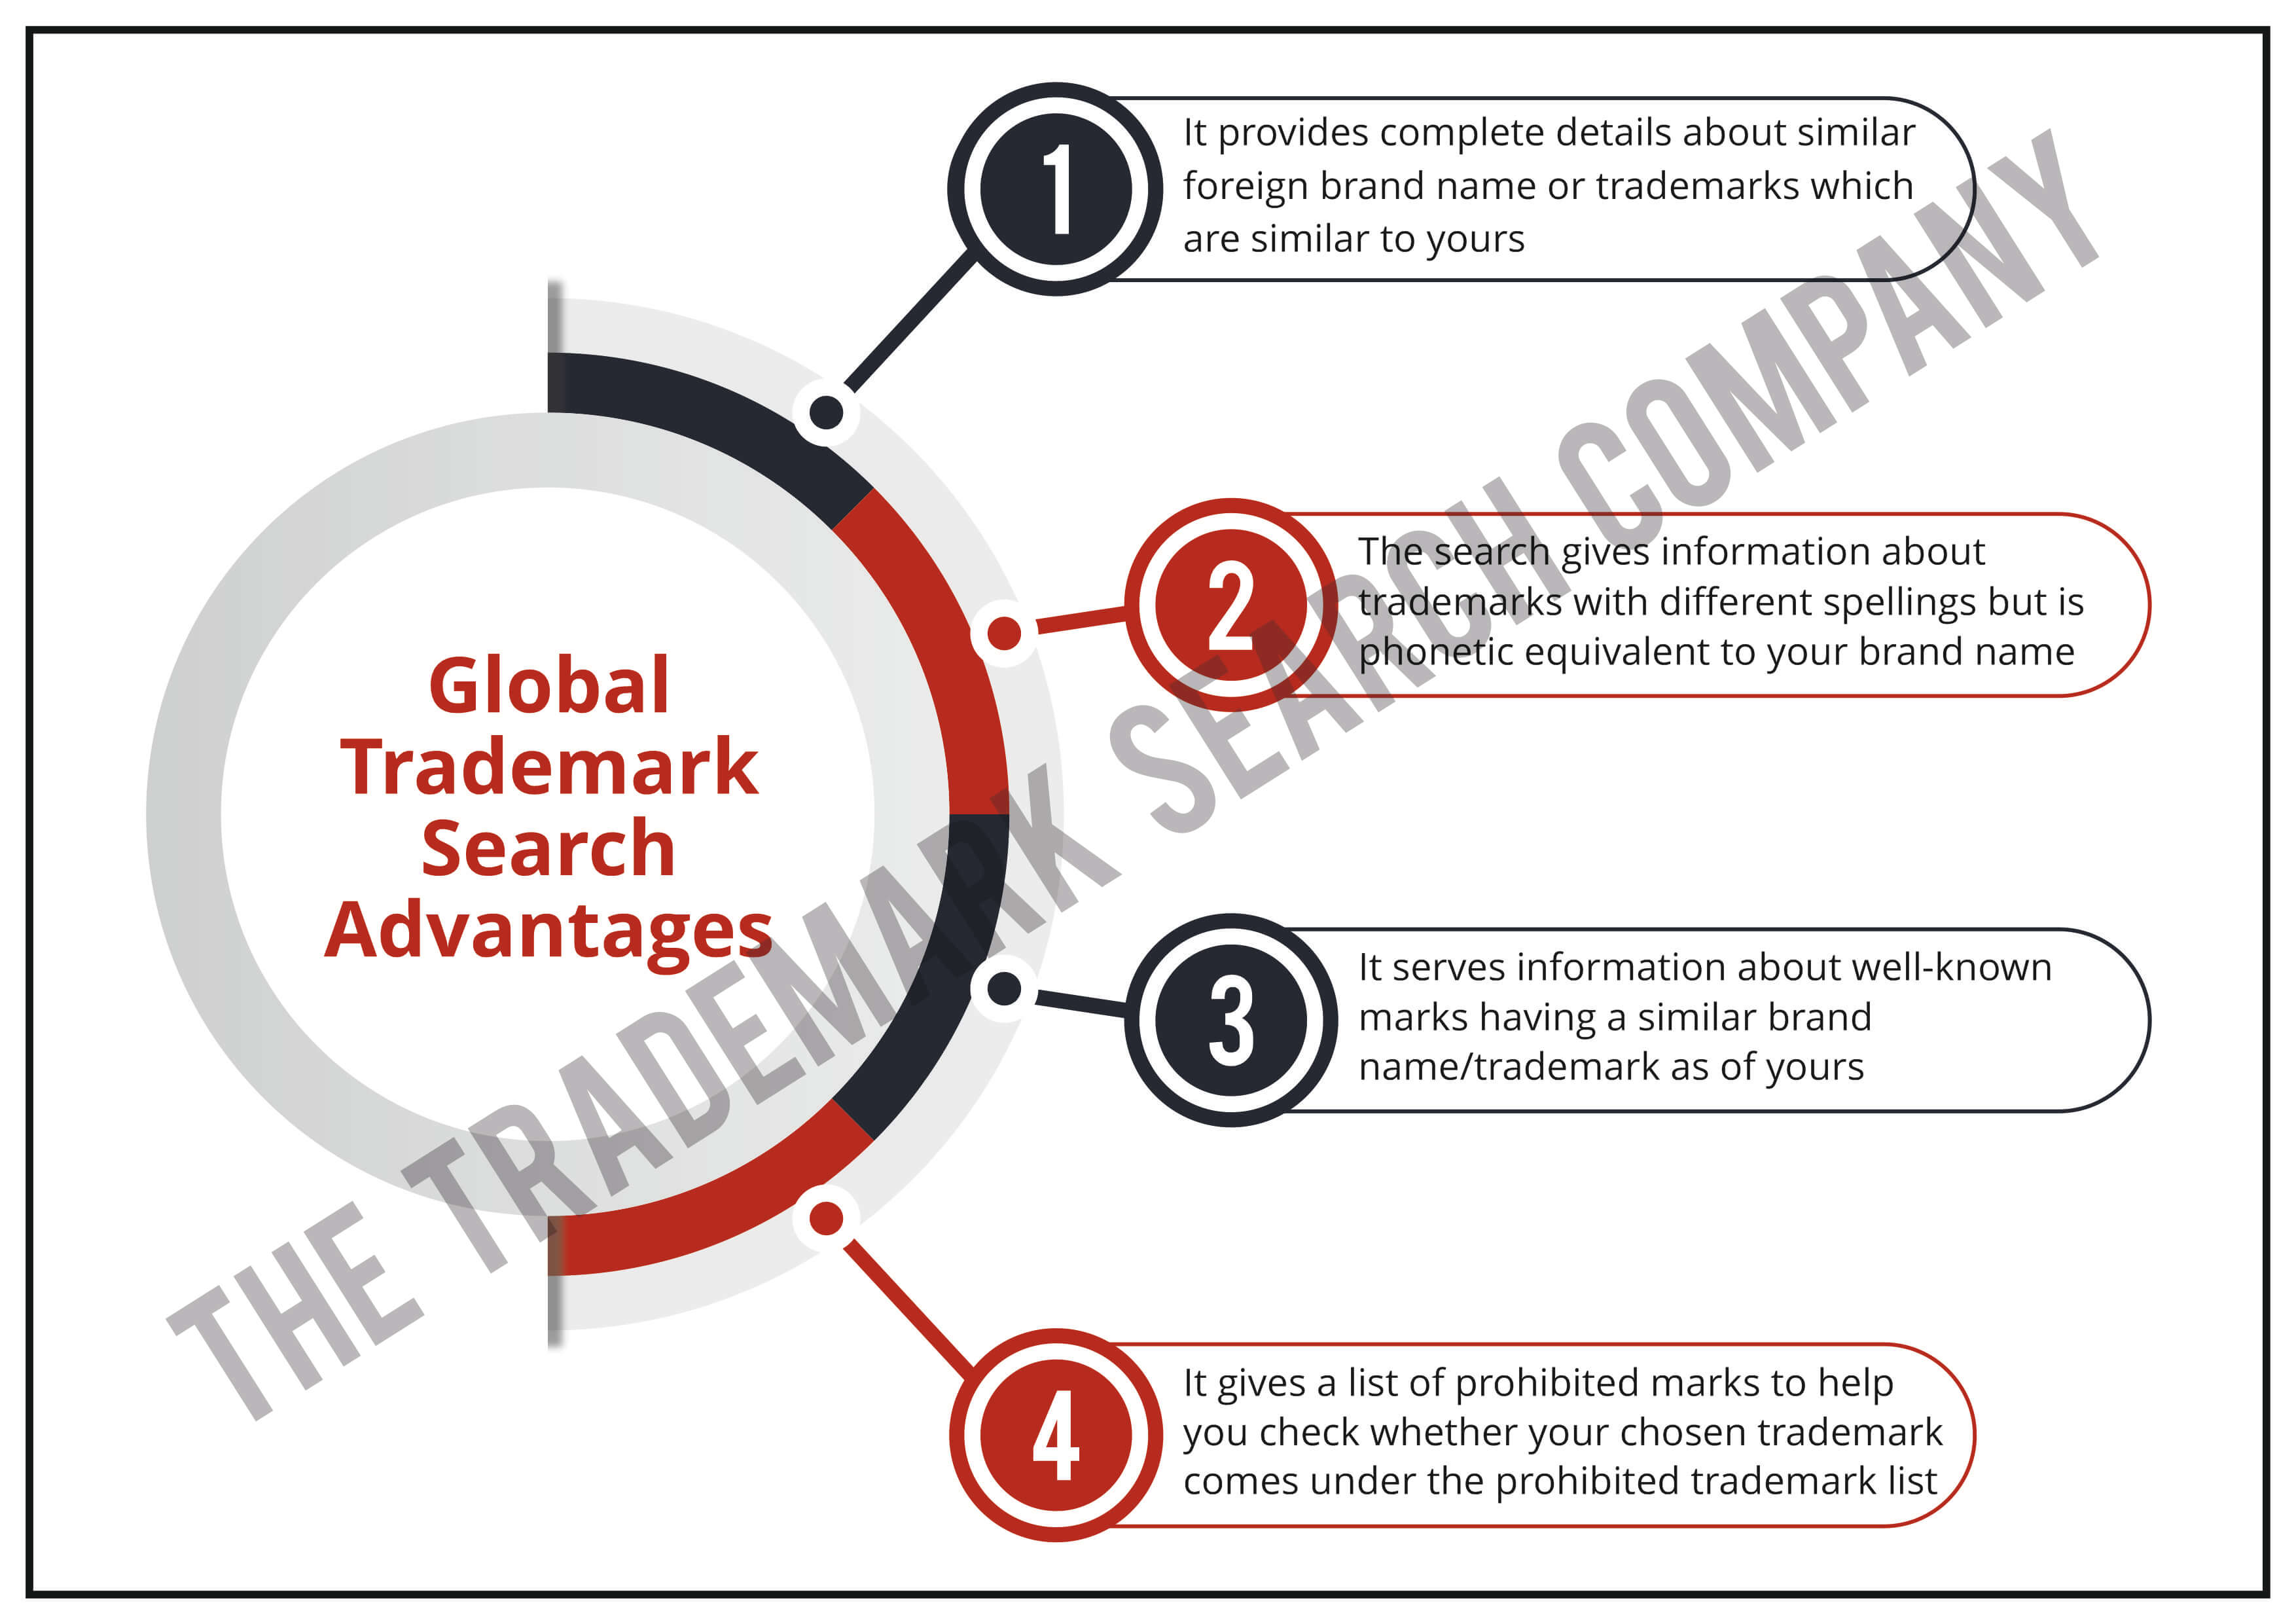 Global Trademark Search Advantages